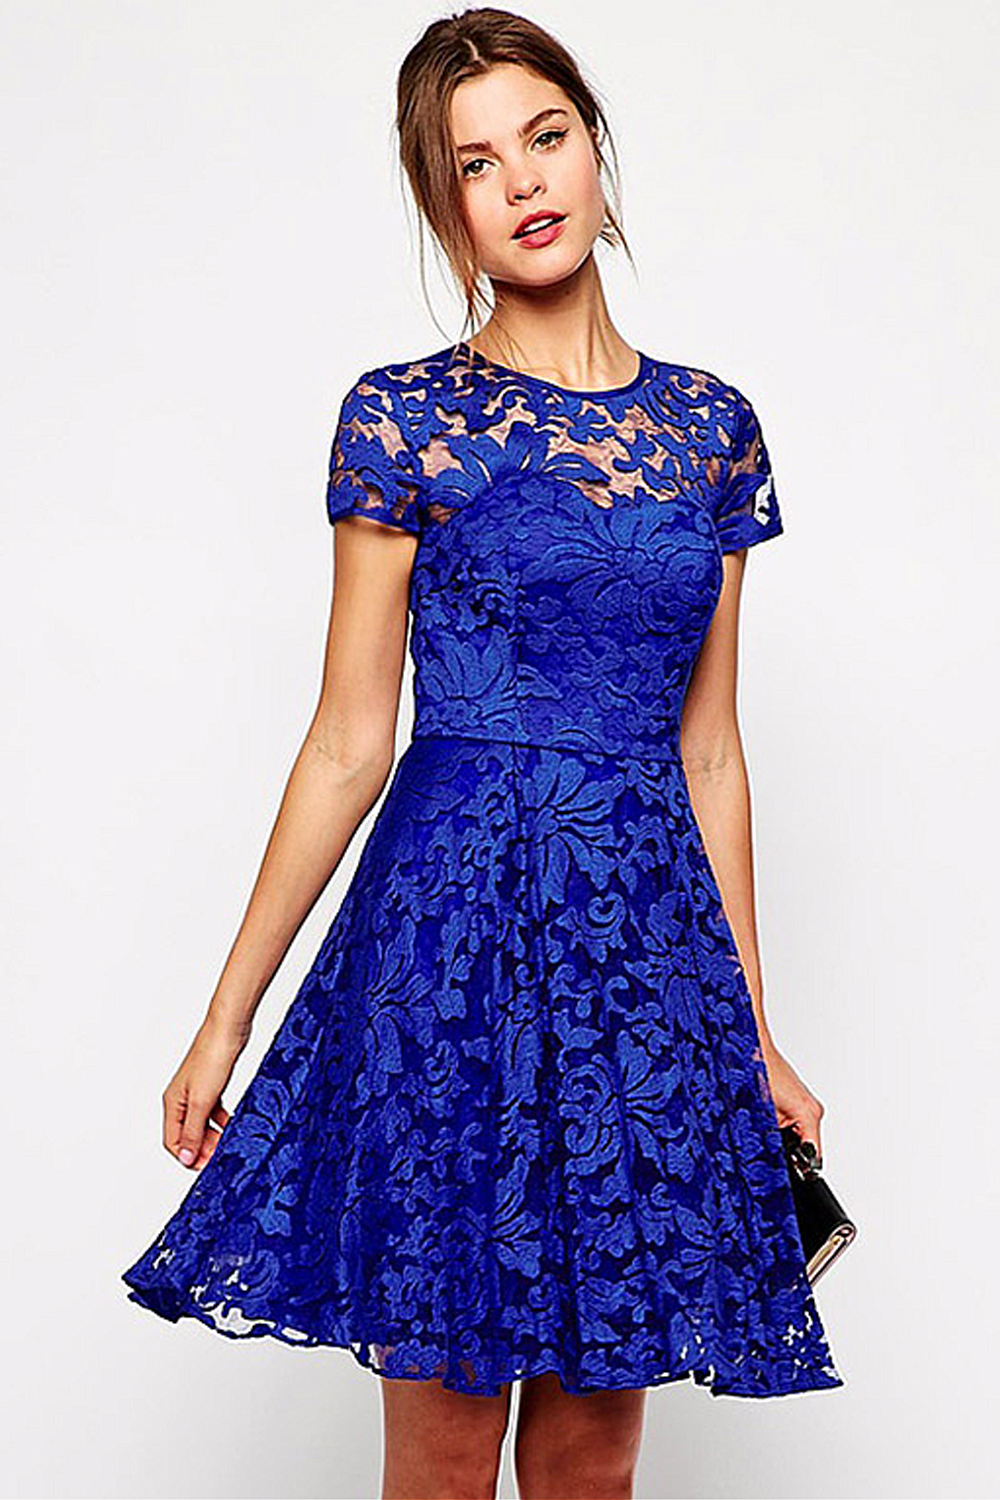 Buy the latest women's Blue dresses online at low price. StyleWe offers cheap dresses in red, black, white and more for different occasions.